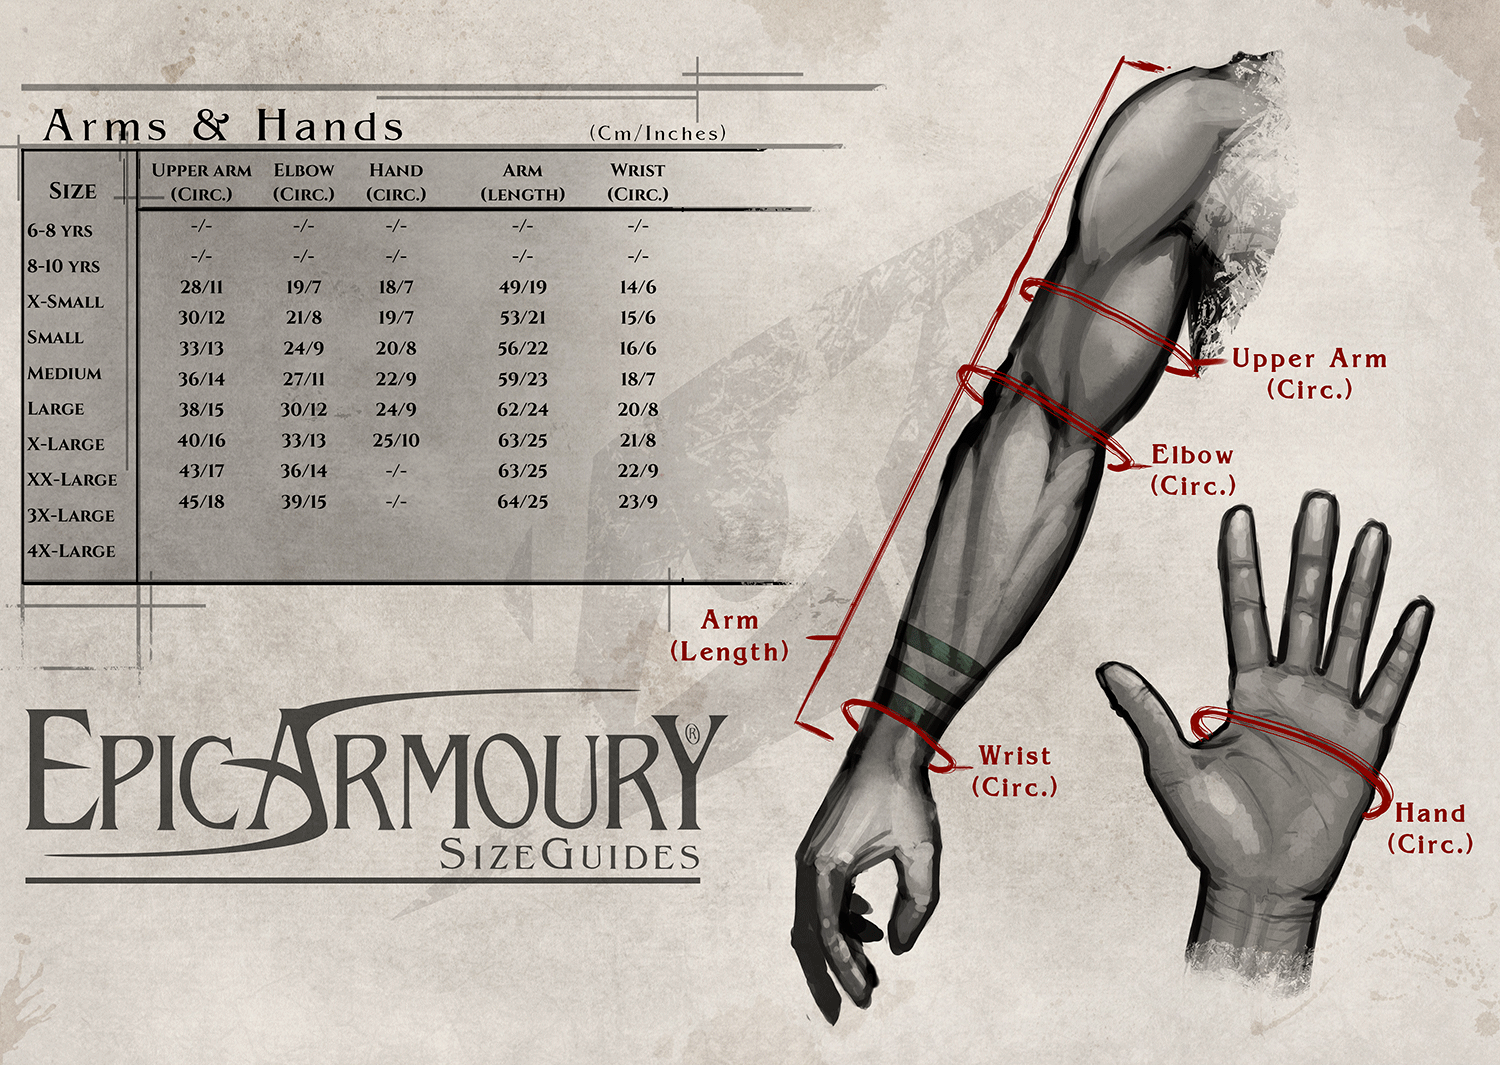 Epic Armoury Arms's & Hands